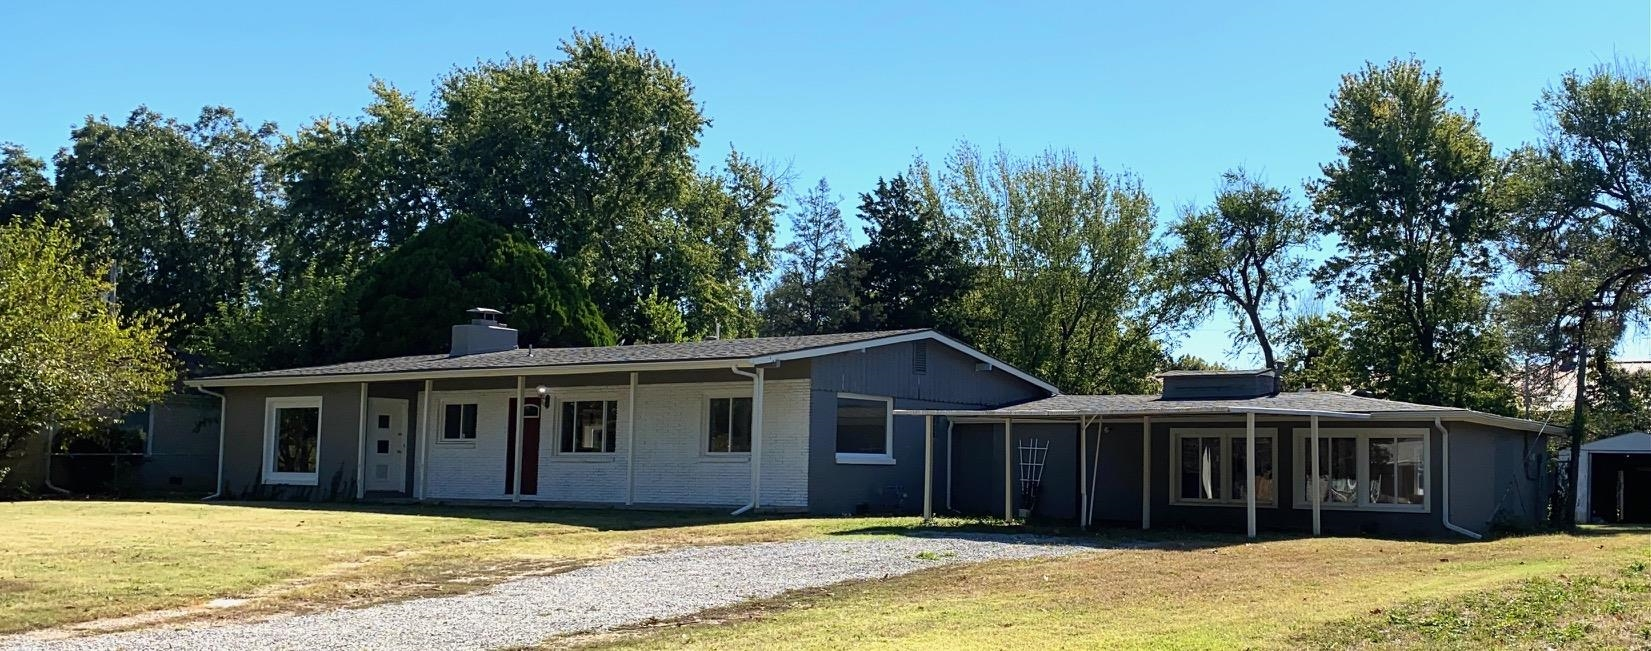 LOTS of space! 1/2 acre lot and good sized rooms. Open kitchen and beautiful hearthroom - great for